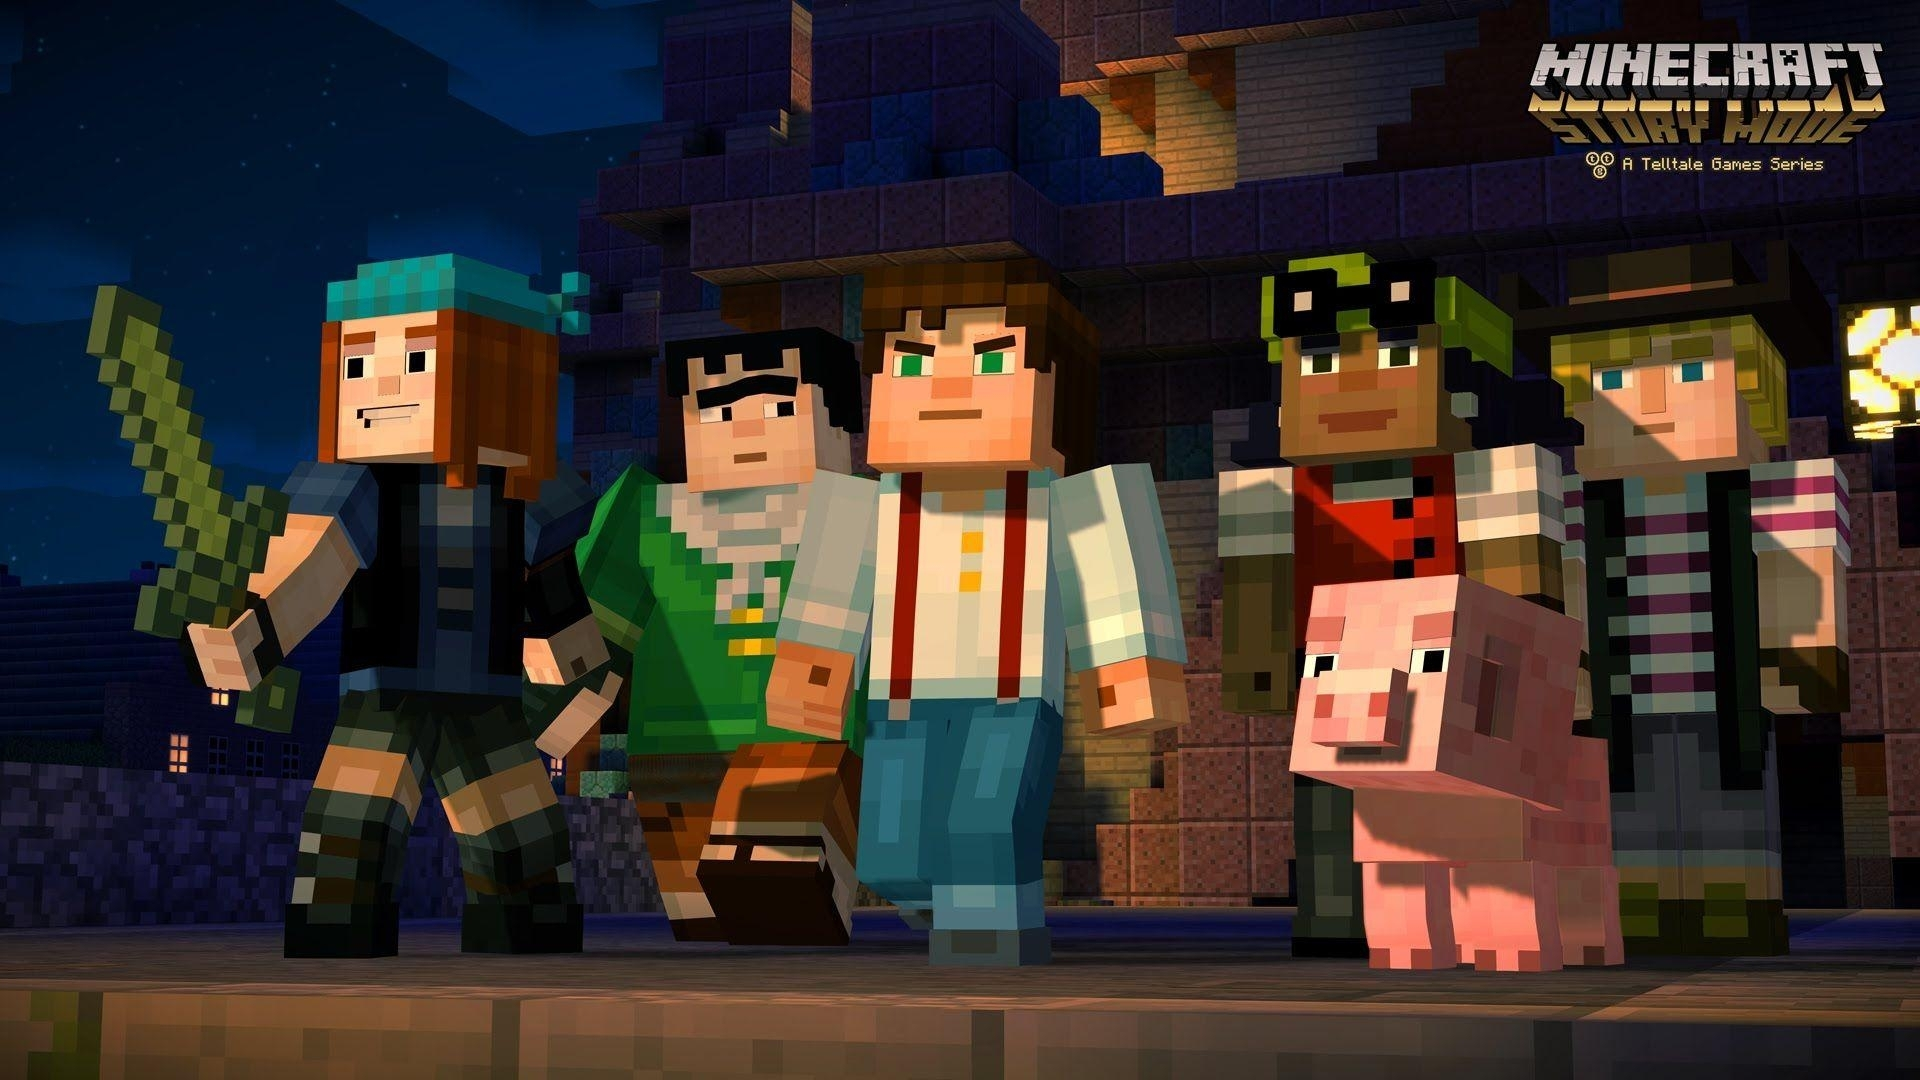 minecraft: story mode wallpapers - wallpaper cave